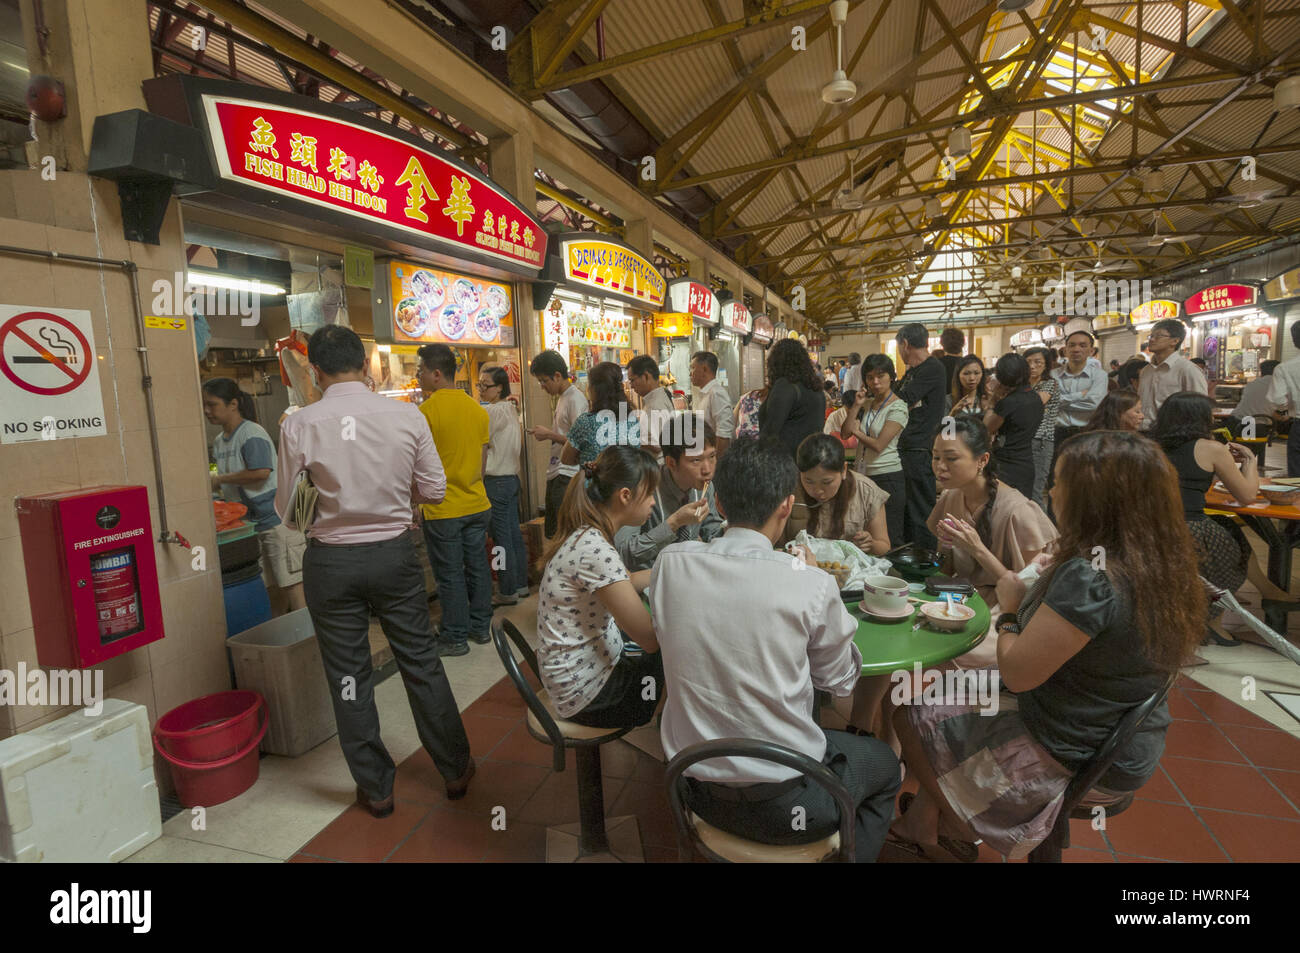 Singapore, Chinatown, food court - Stock Image